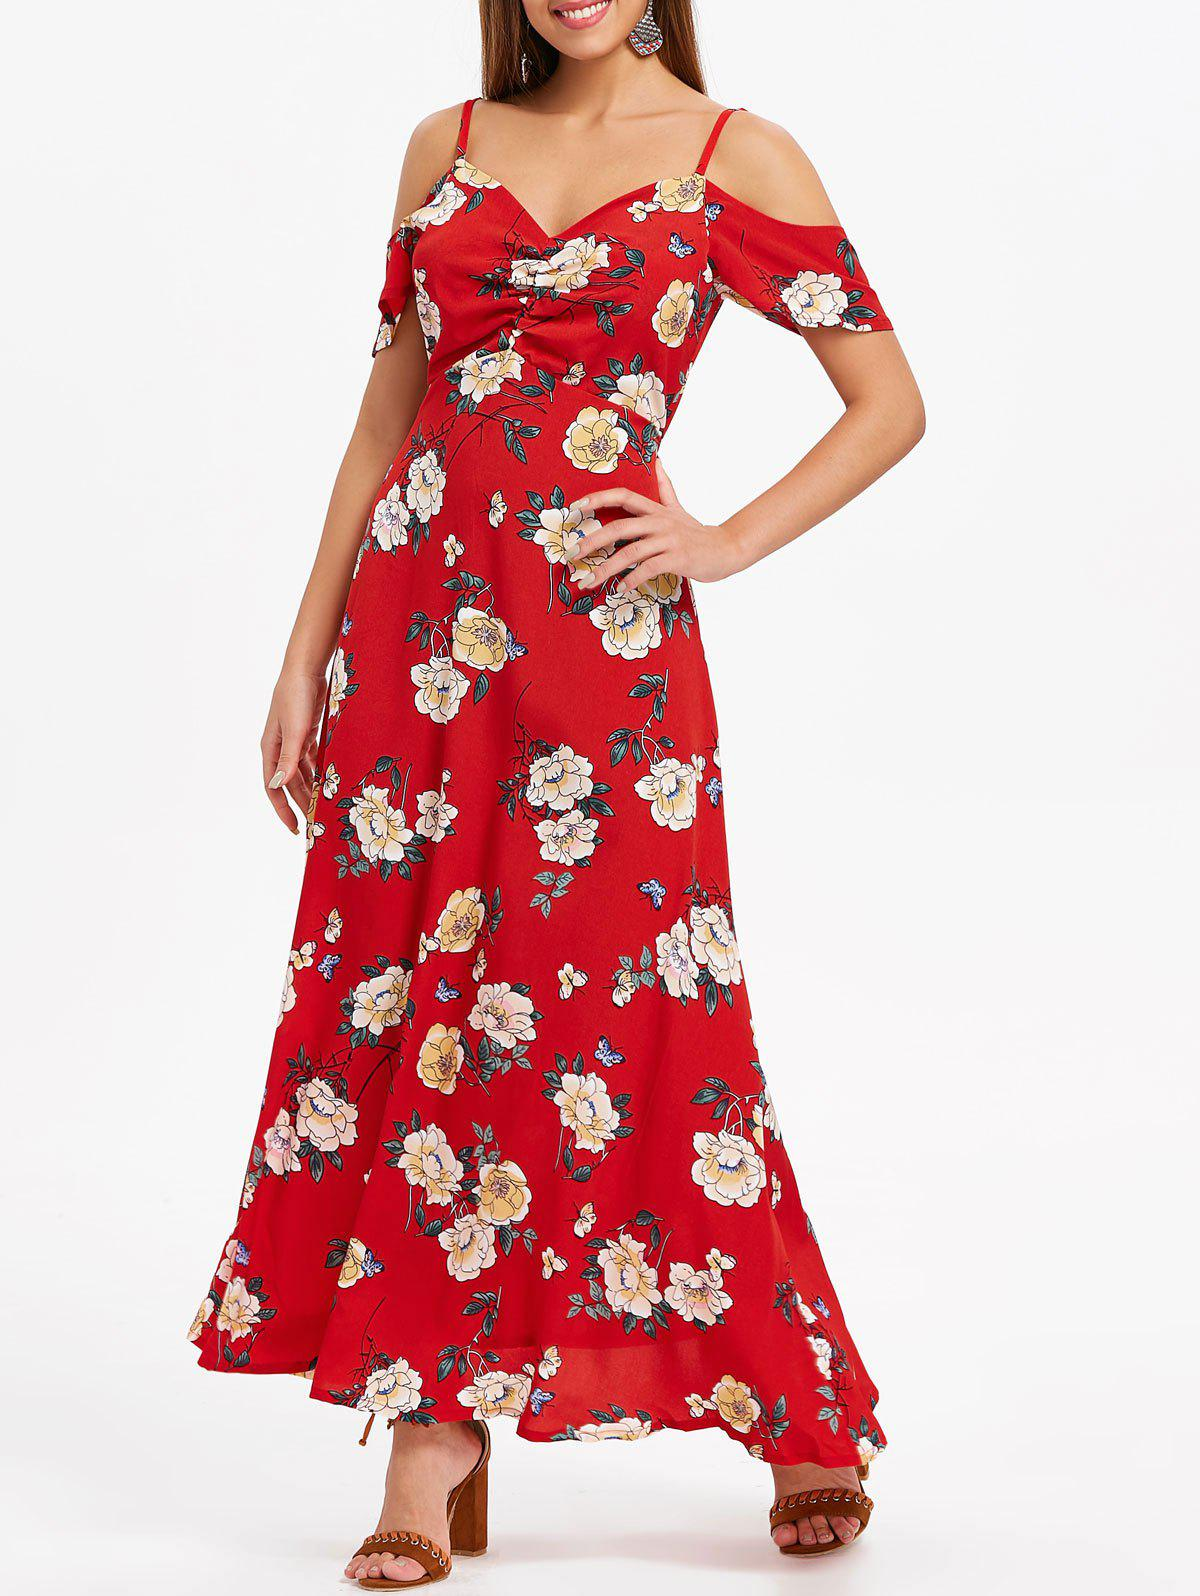 Affordable Open Shoulder Casual Floral Dress